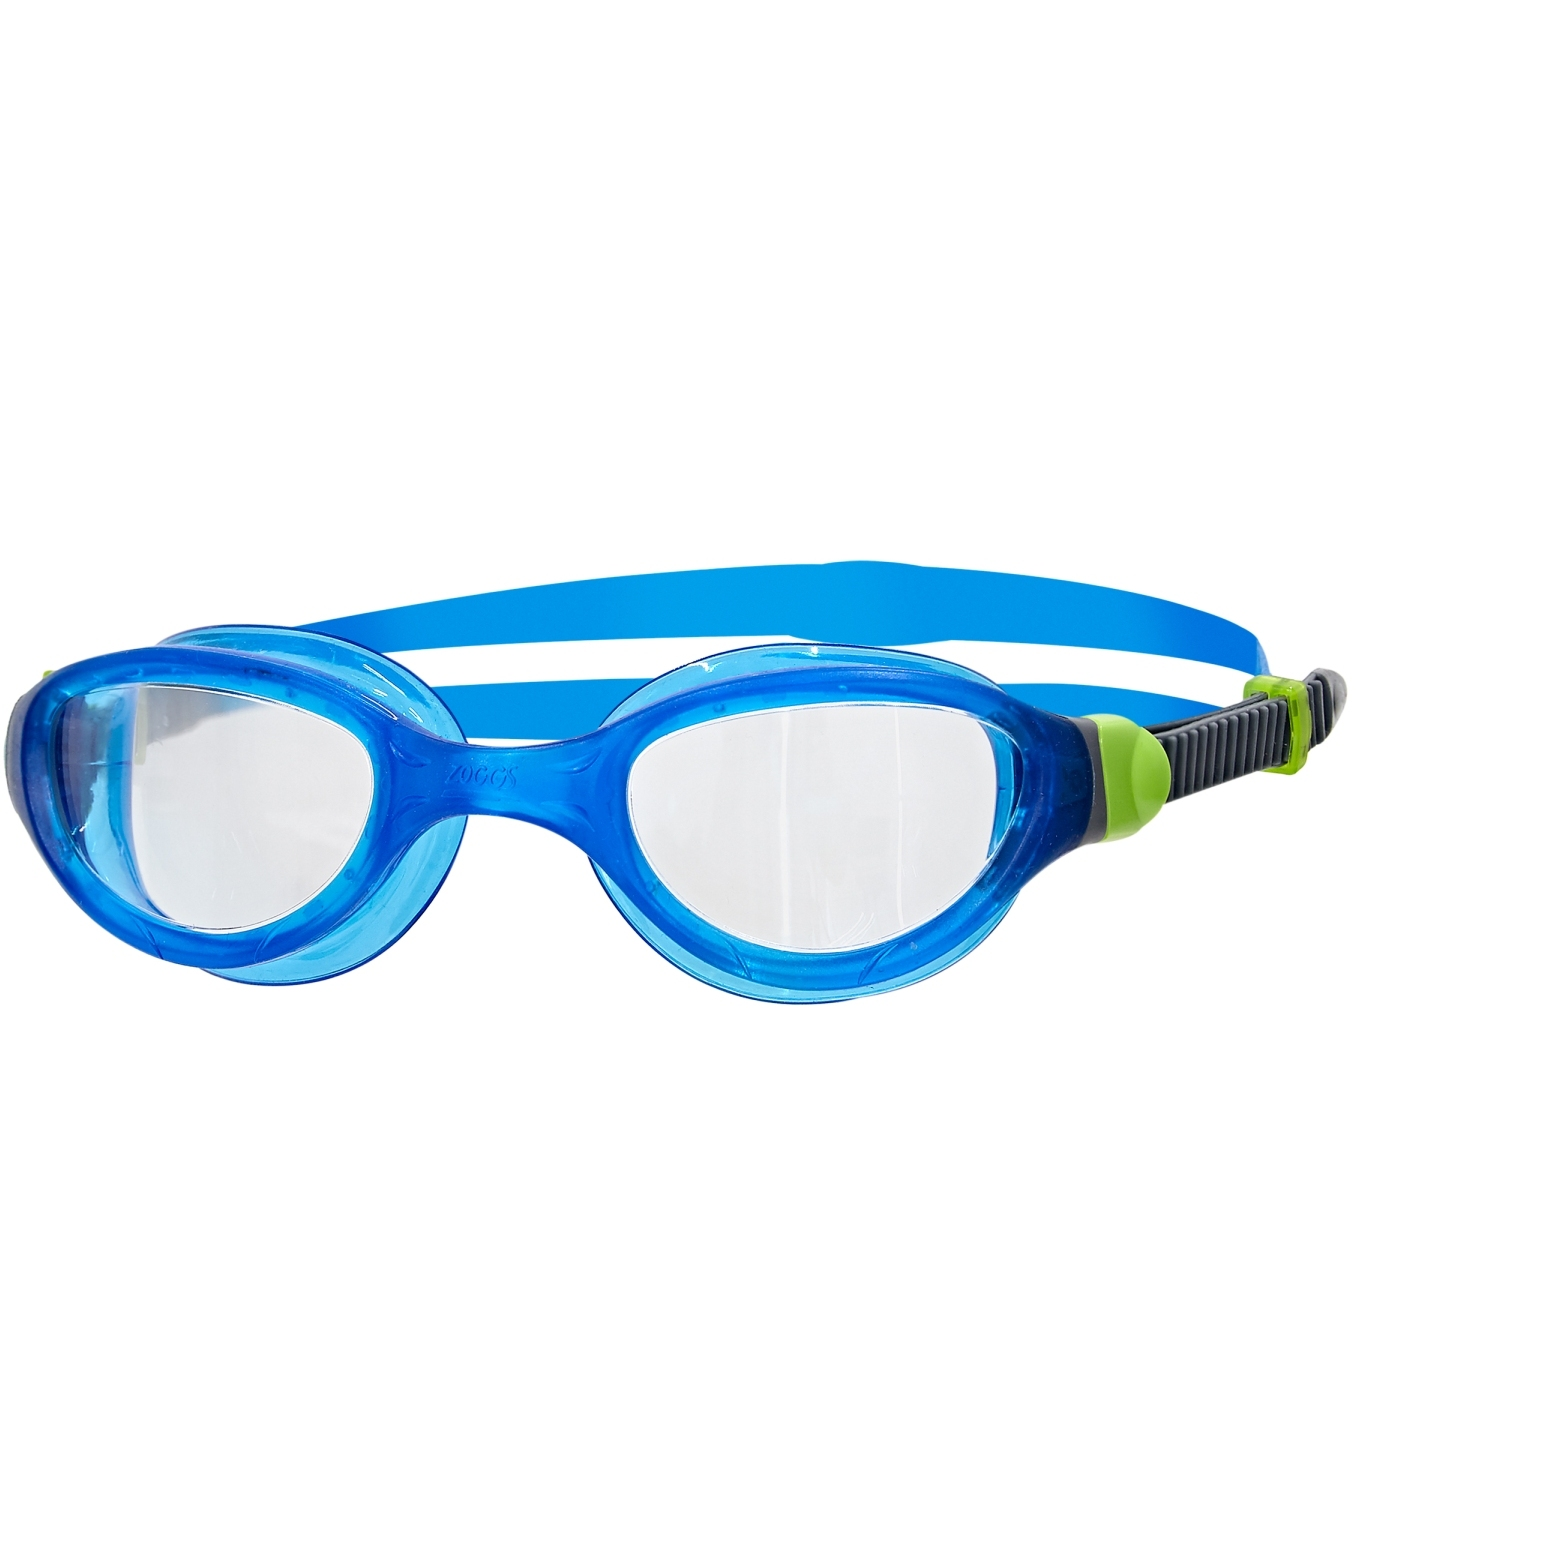 Zoggs Phantom 2.0 Schwimmbrille - translucent blue/green/clear